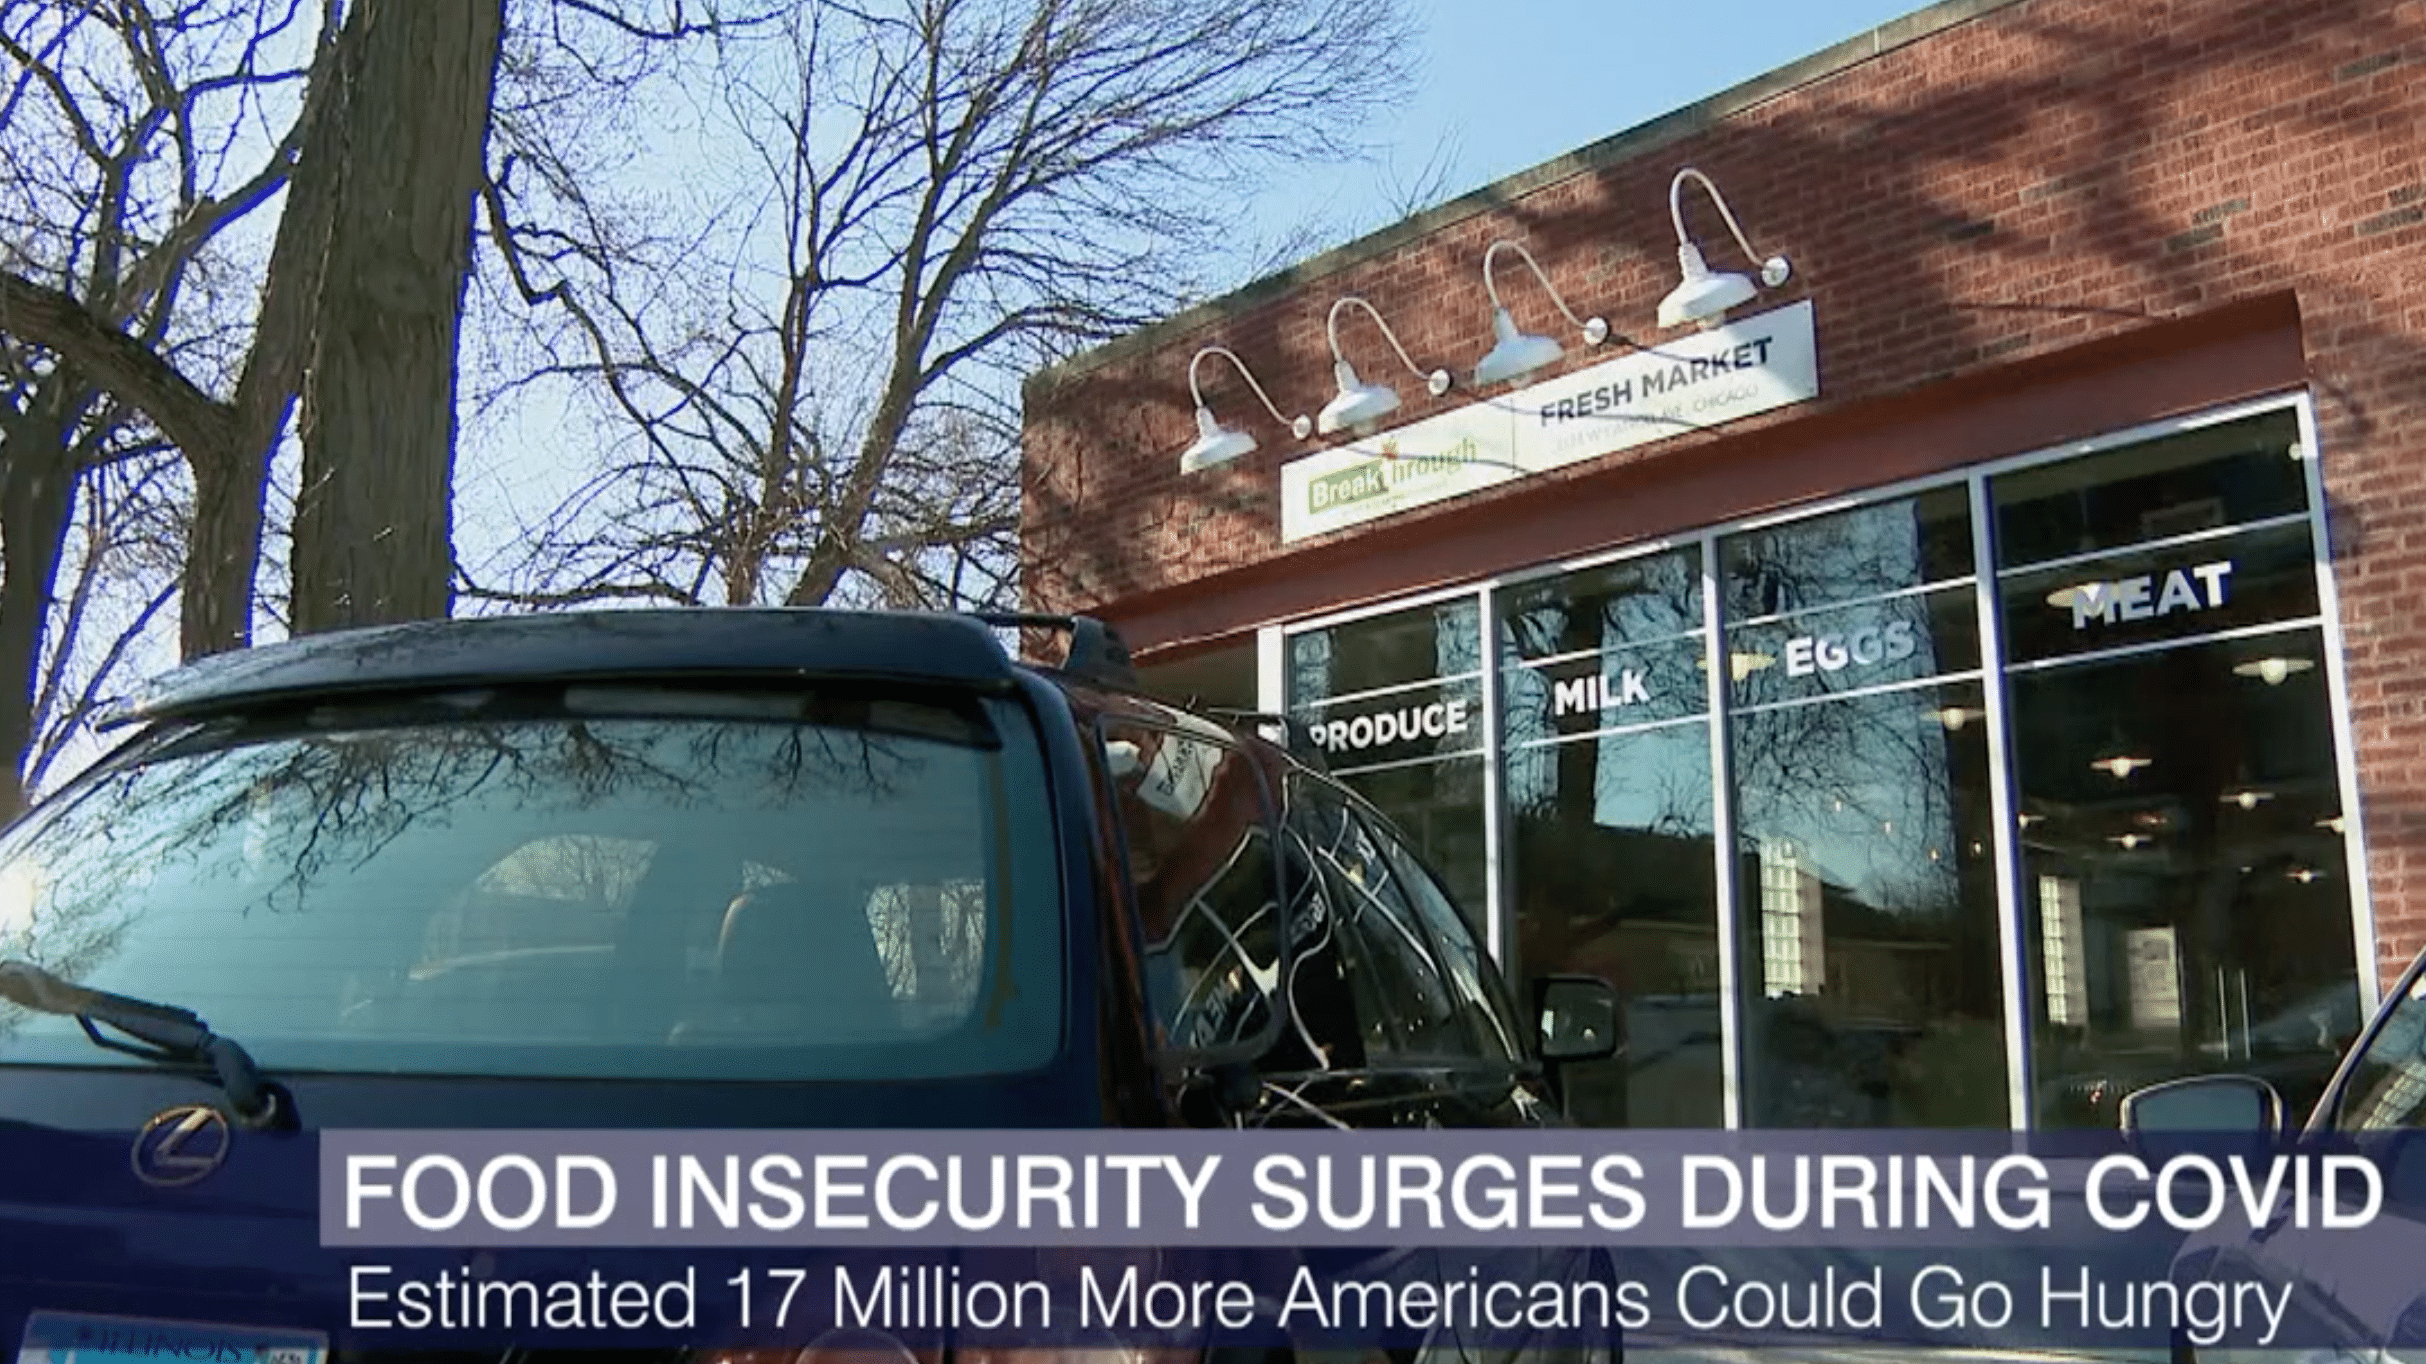 Food Insecurity Still High Amid Pandemic in City, Suburbs and Rural Areas Alike 4